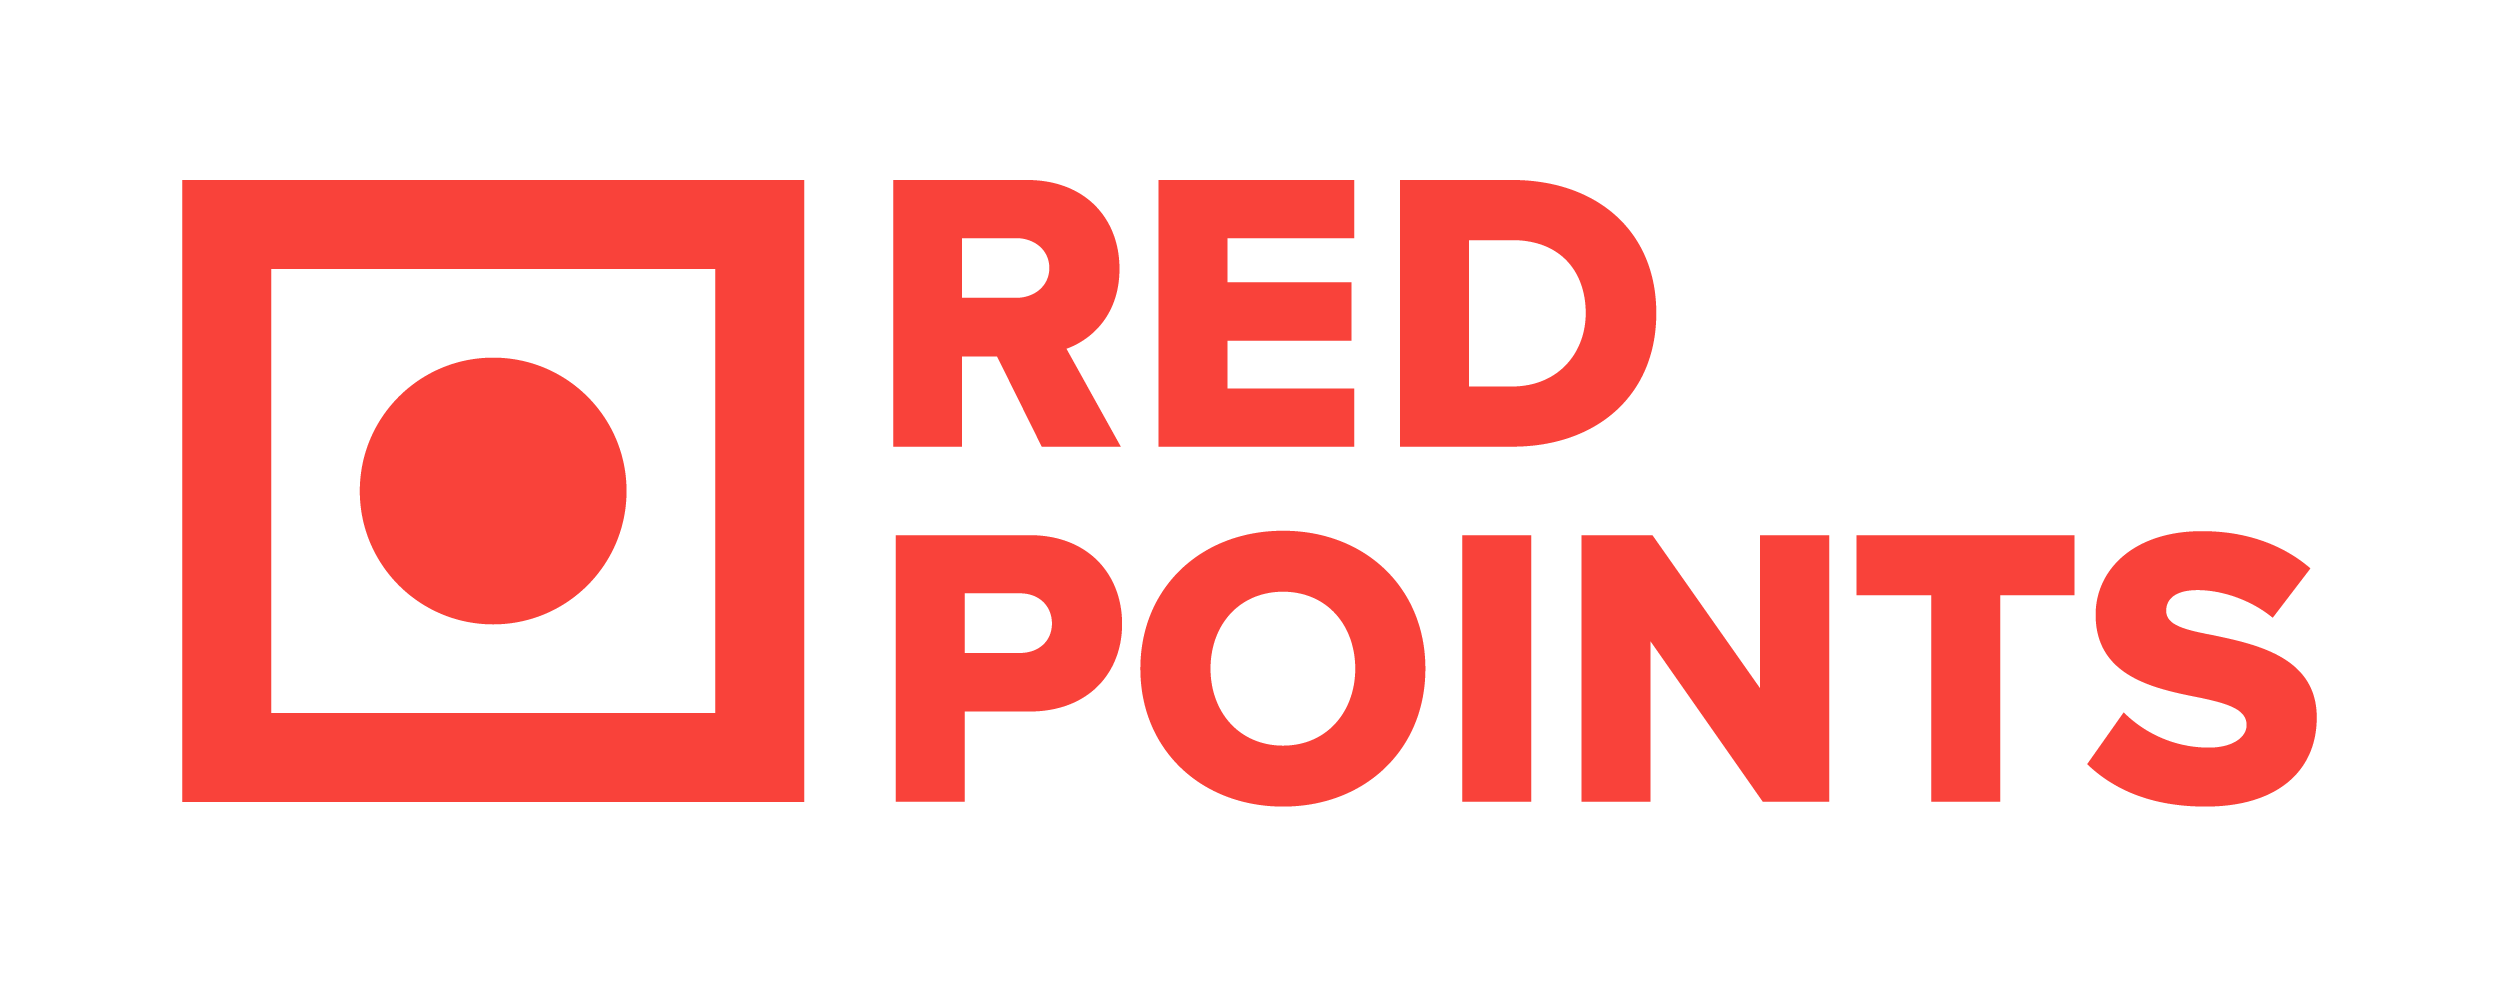 red-points-rgb